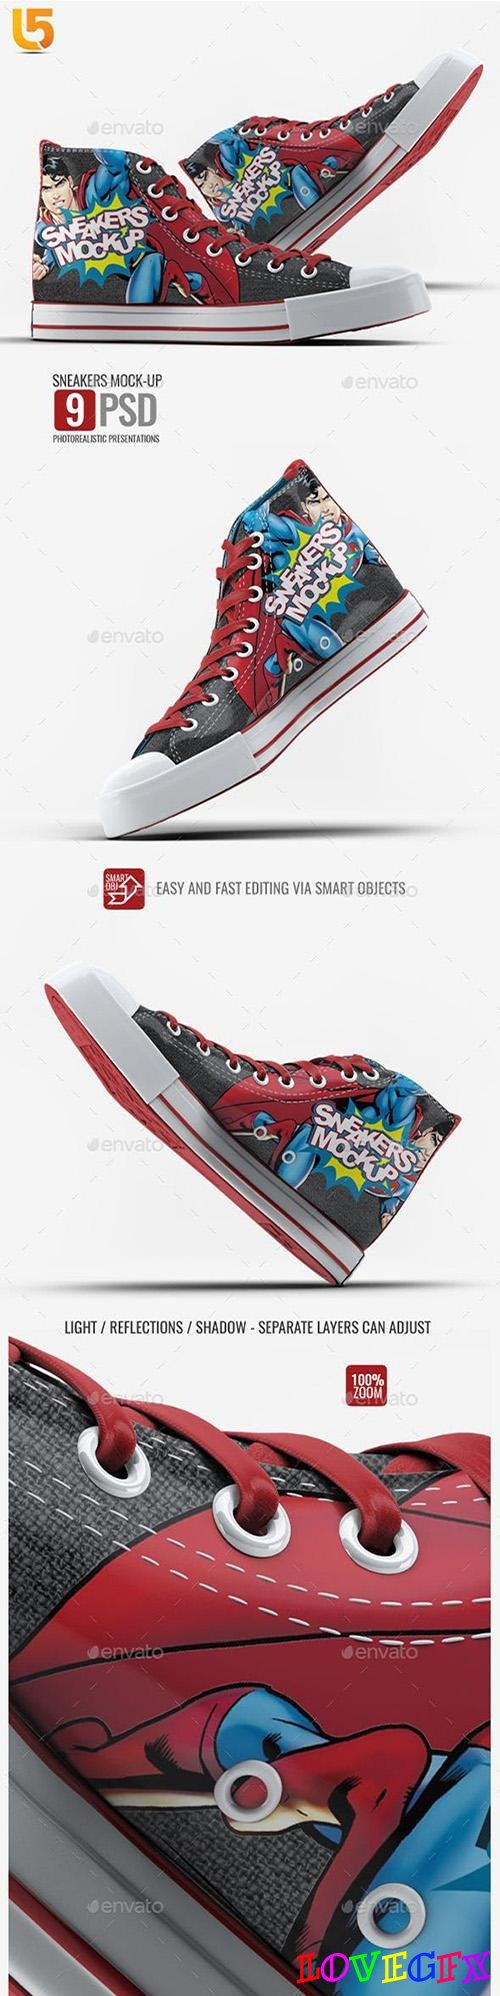 Sneakers Mock-Up v1 - 23225460